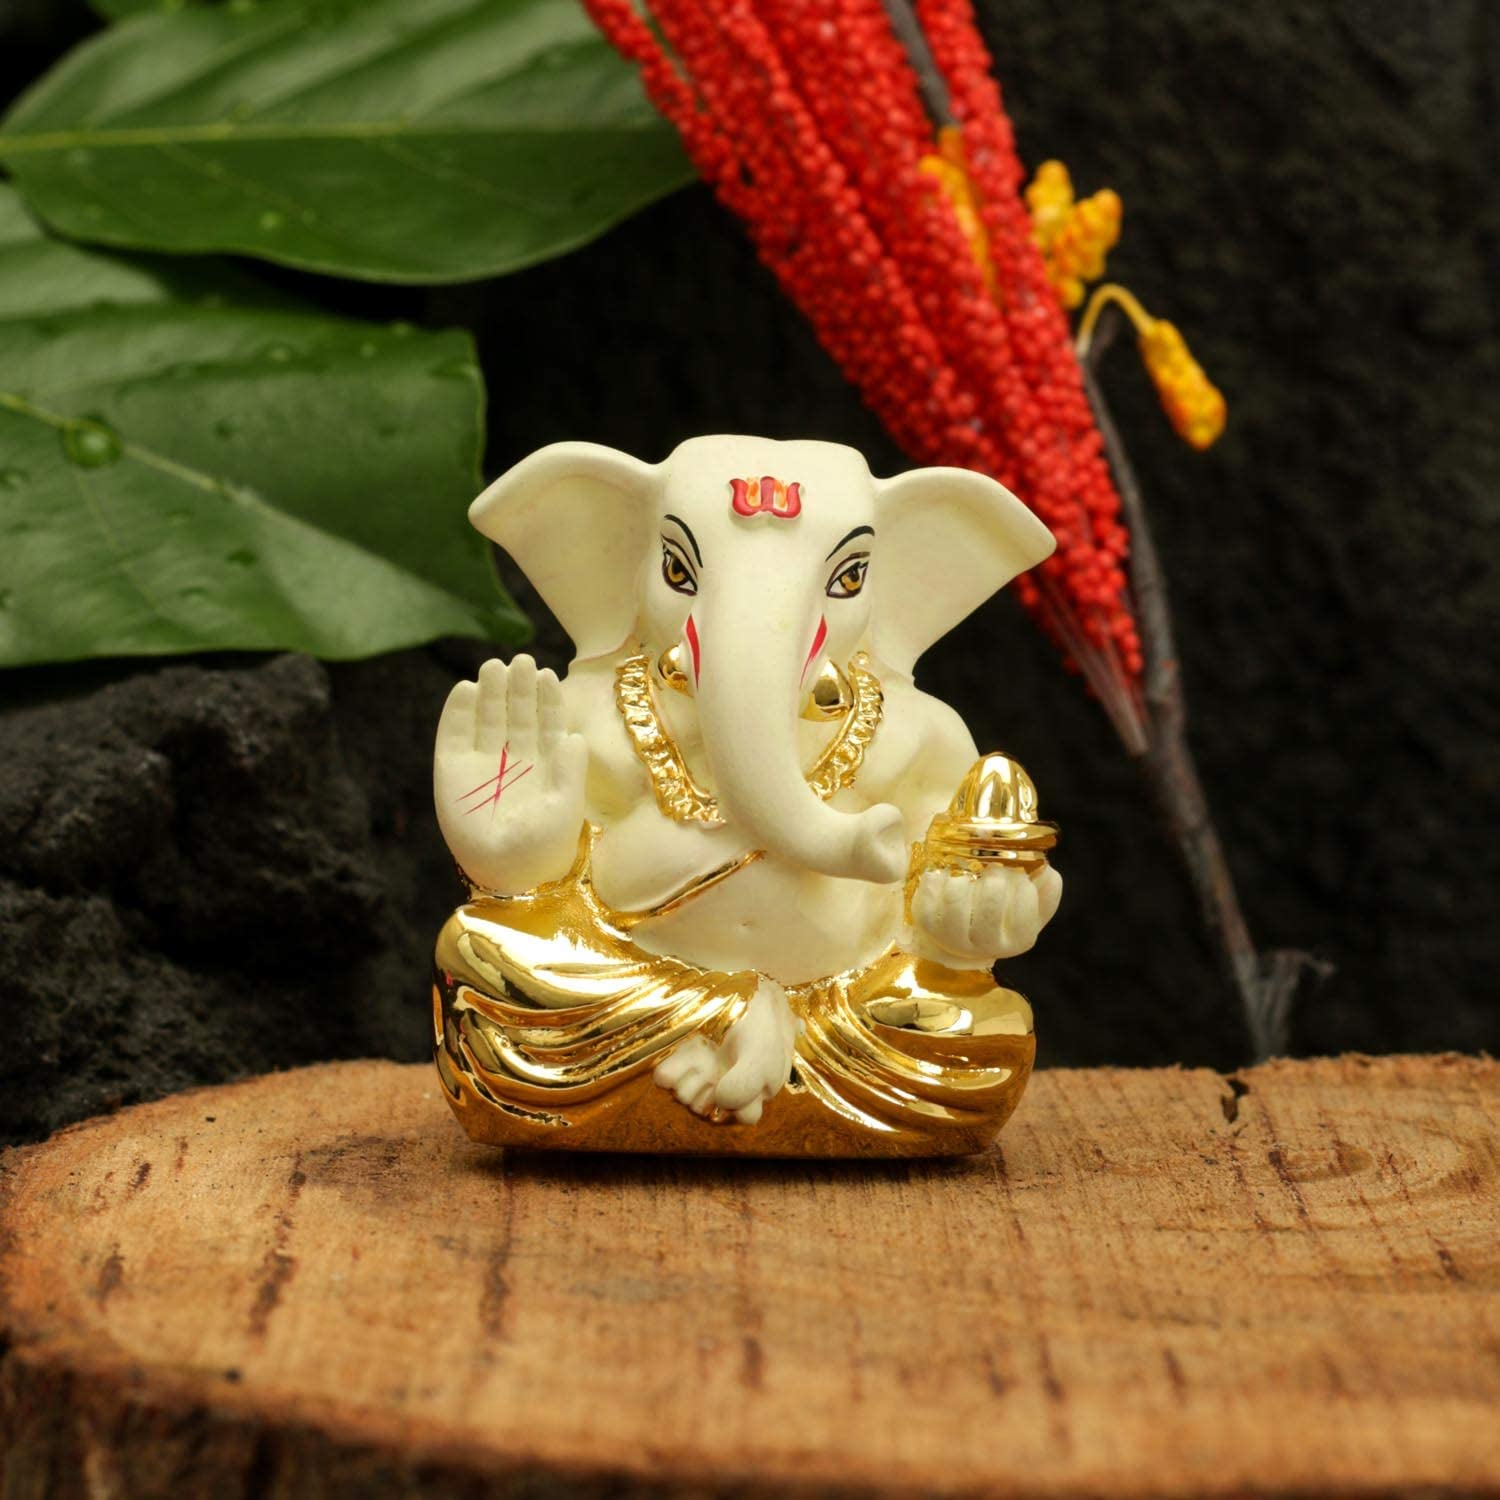 CraftVatika Gold Plated Off White Terracotta Appu Ganesha for Car Dashboard Statue God Ganesh Murti Ganpati Idol FigurineHome Decor (Size: 6 cm x 4 cm)